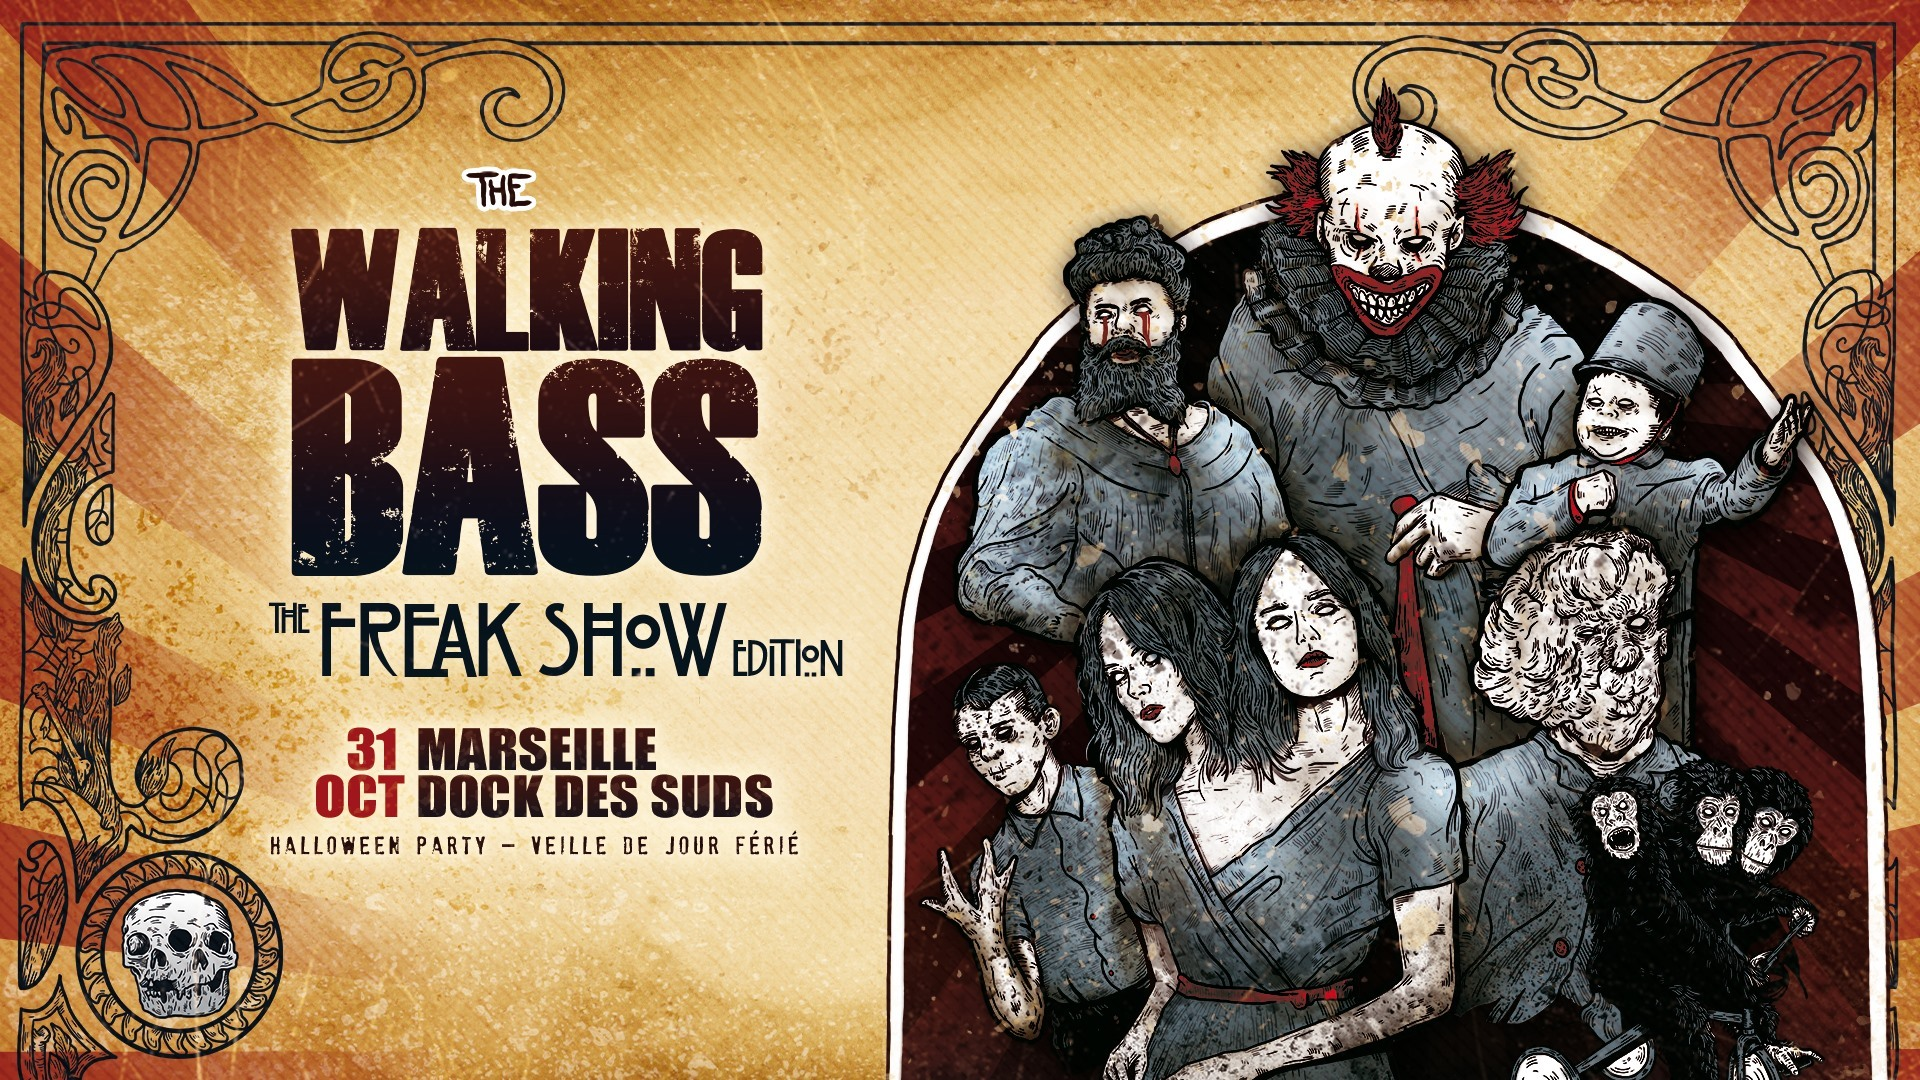 The Walking Bass Festival : The Freak Show Edition